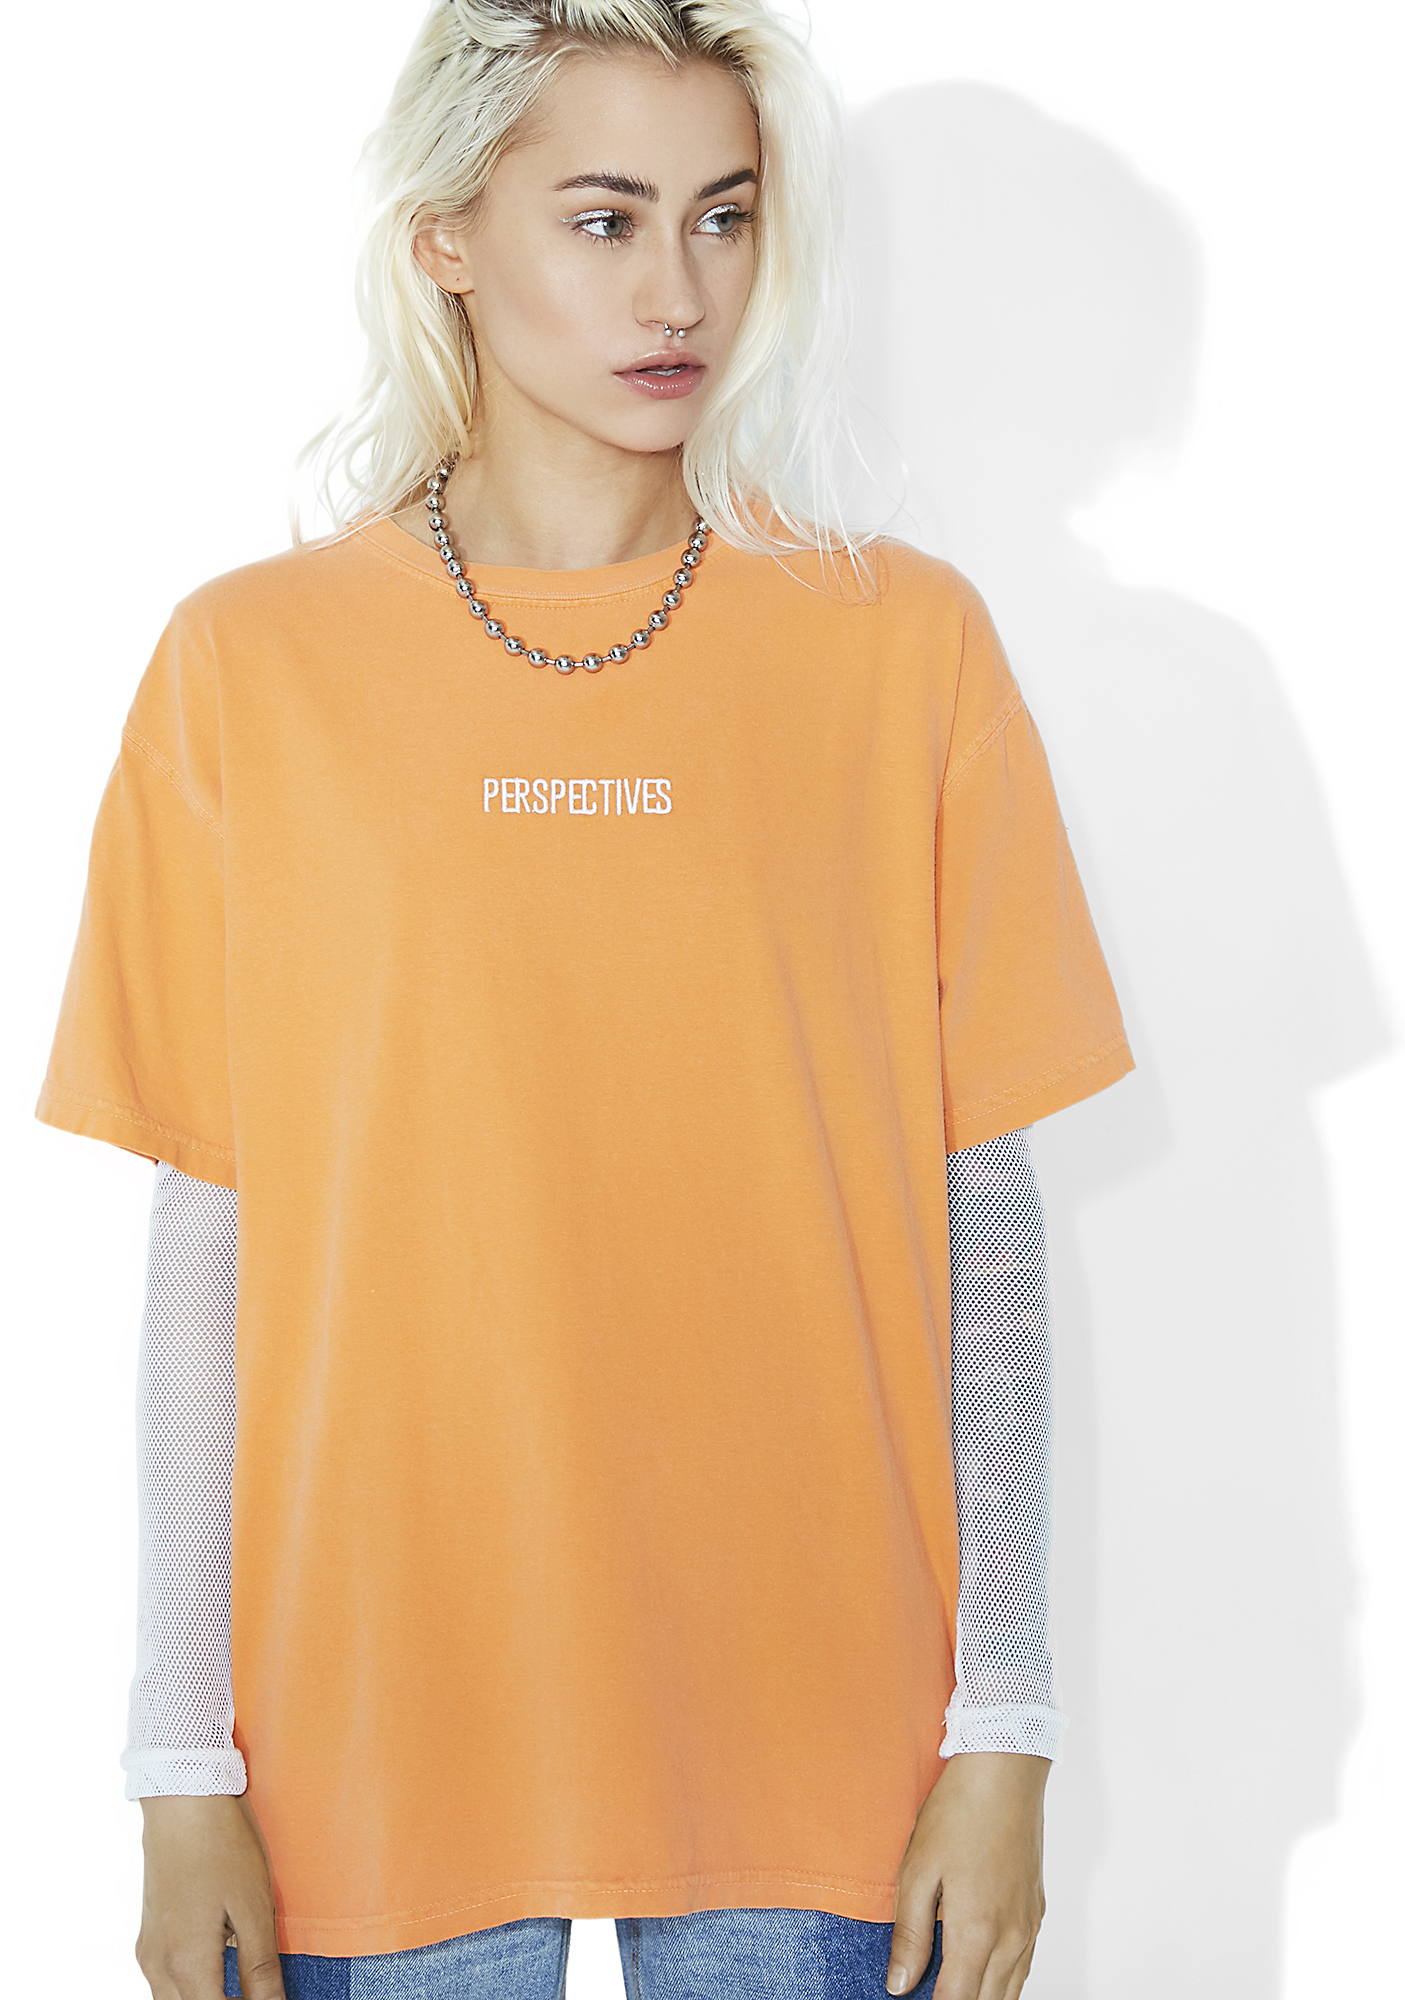 Perspectives Global Perspectives Logo Tee